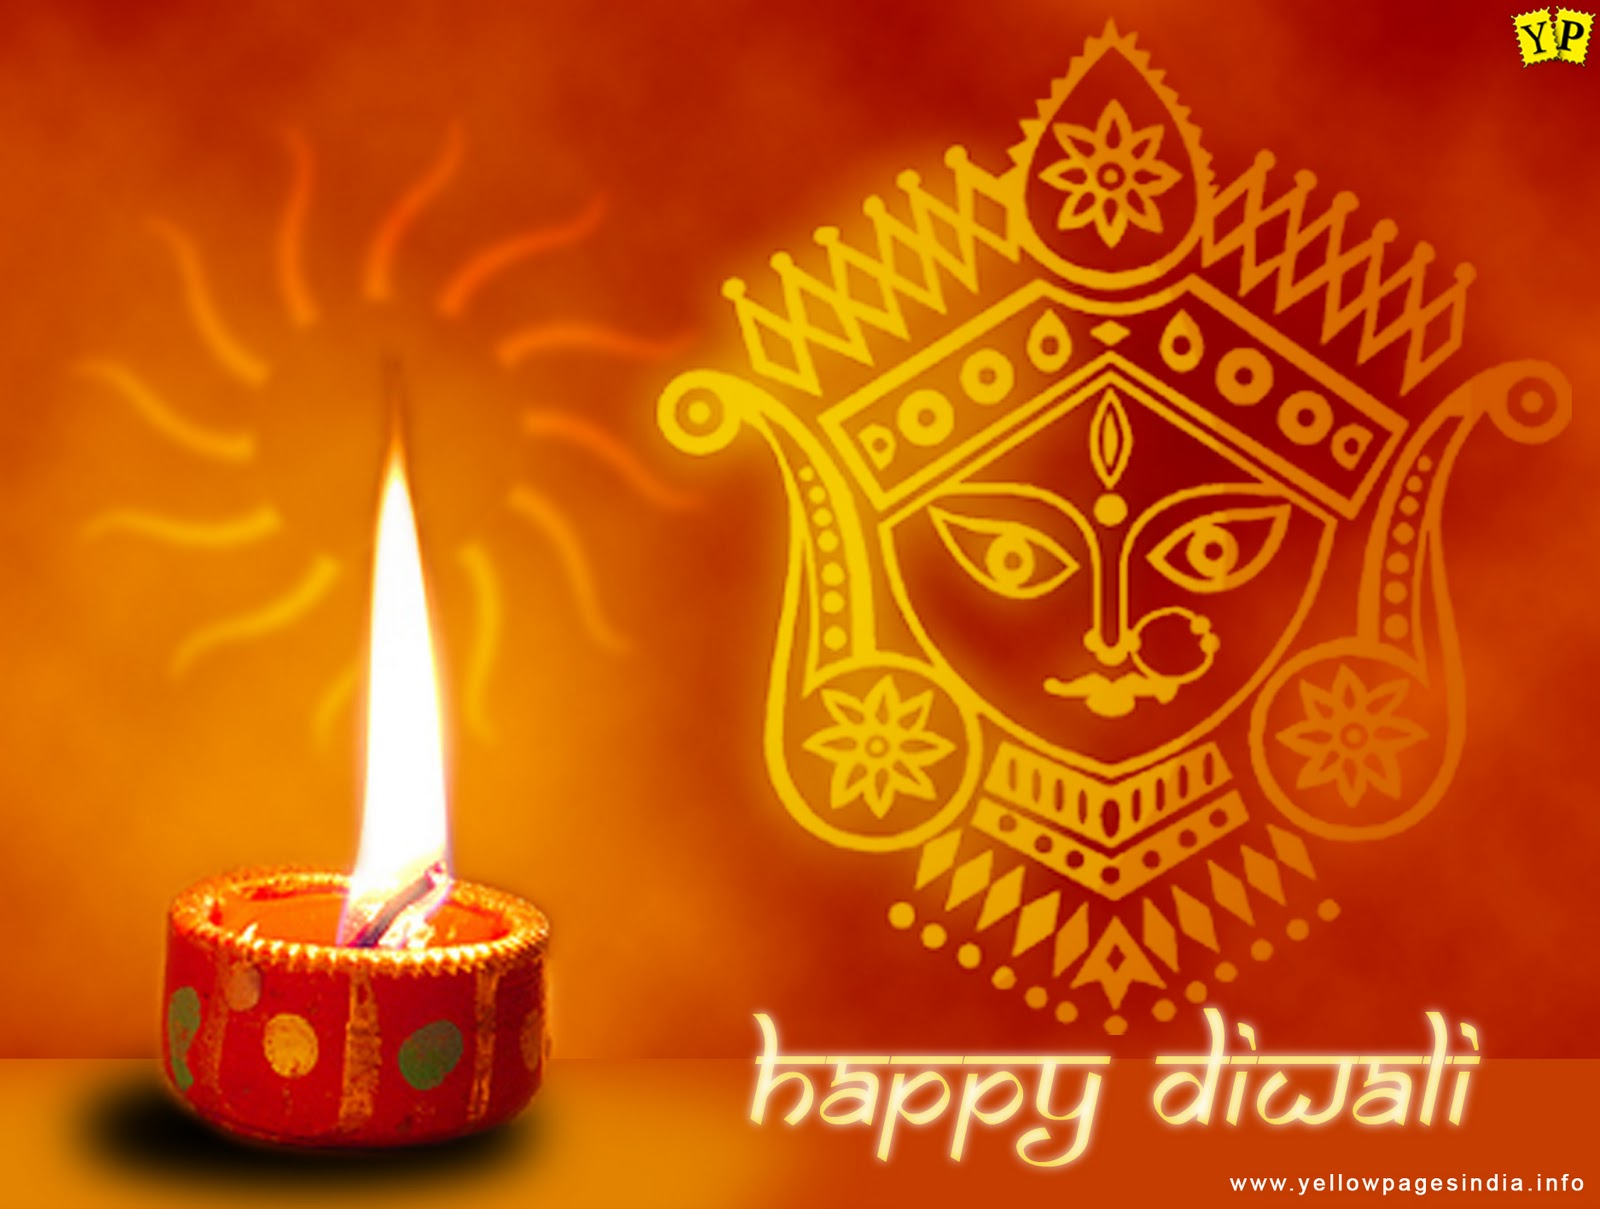 Diwali Messages http://picturespool.blogspot.com/2012/11/diwali-greeting-cards-diwali-wishes.html